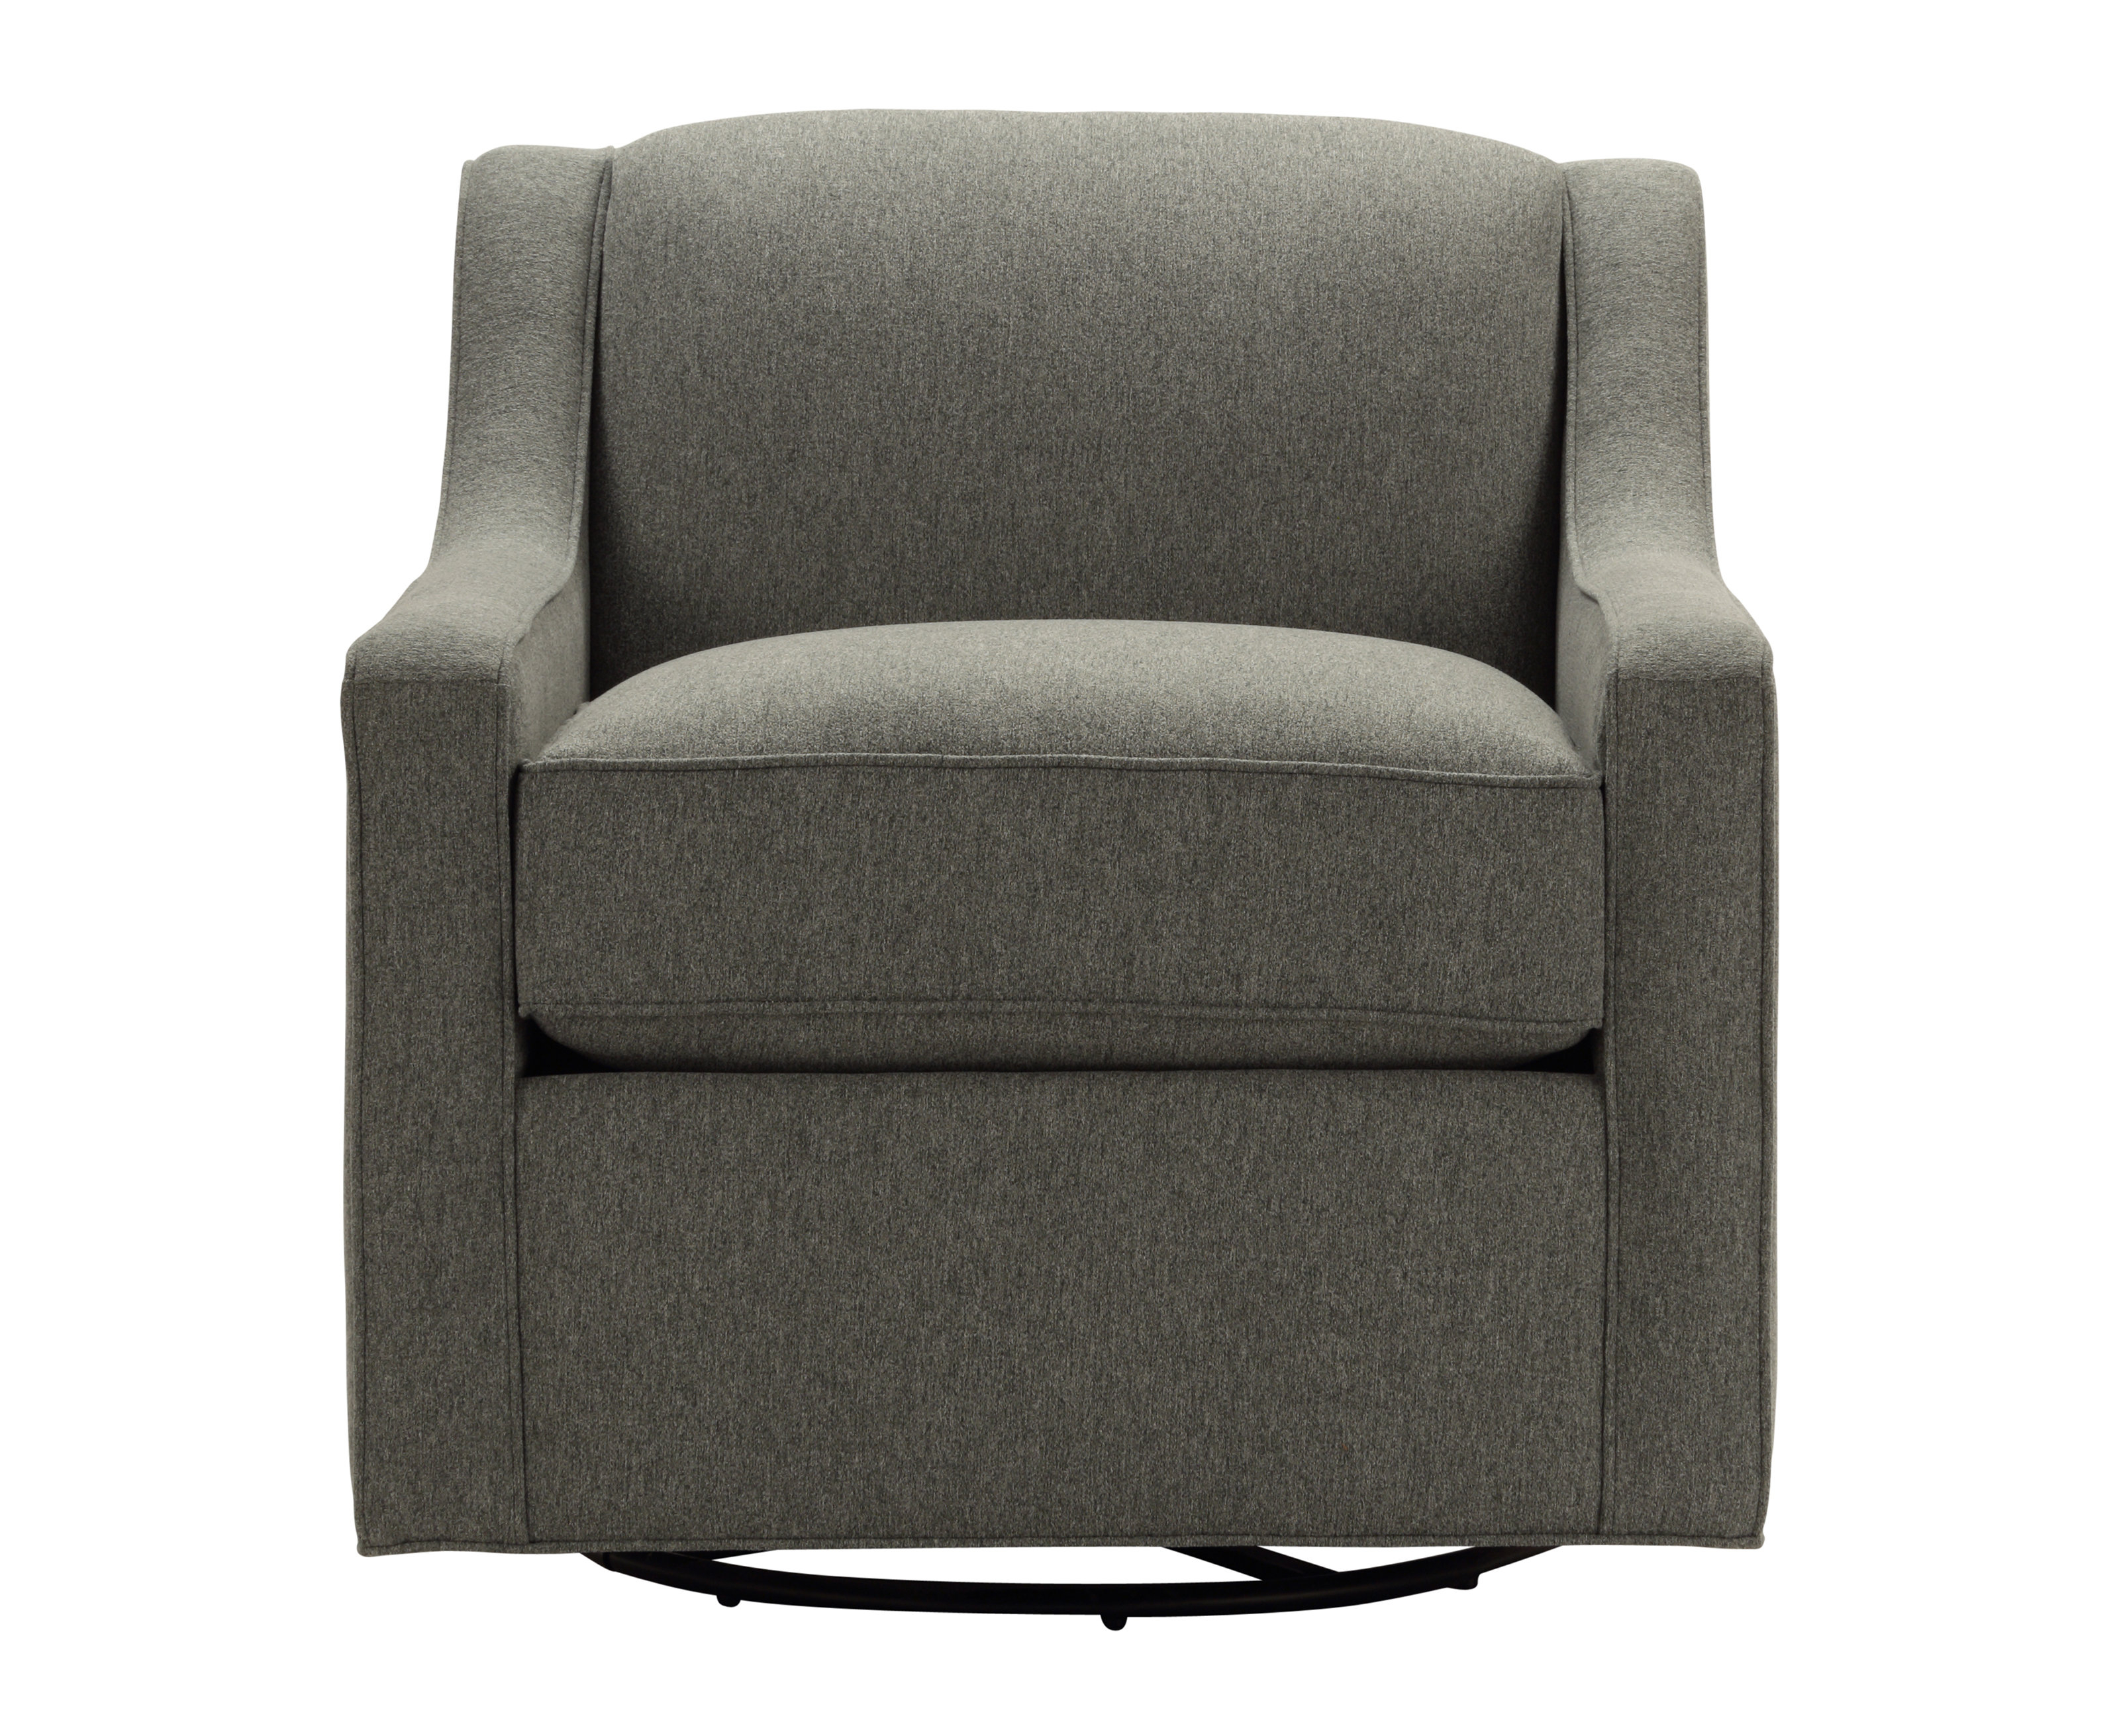 Wayfair Swivel Glider Chair: 25 Best Mari Swivel Glider Recliners